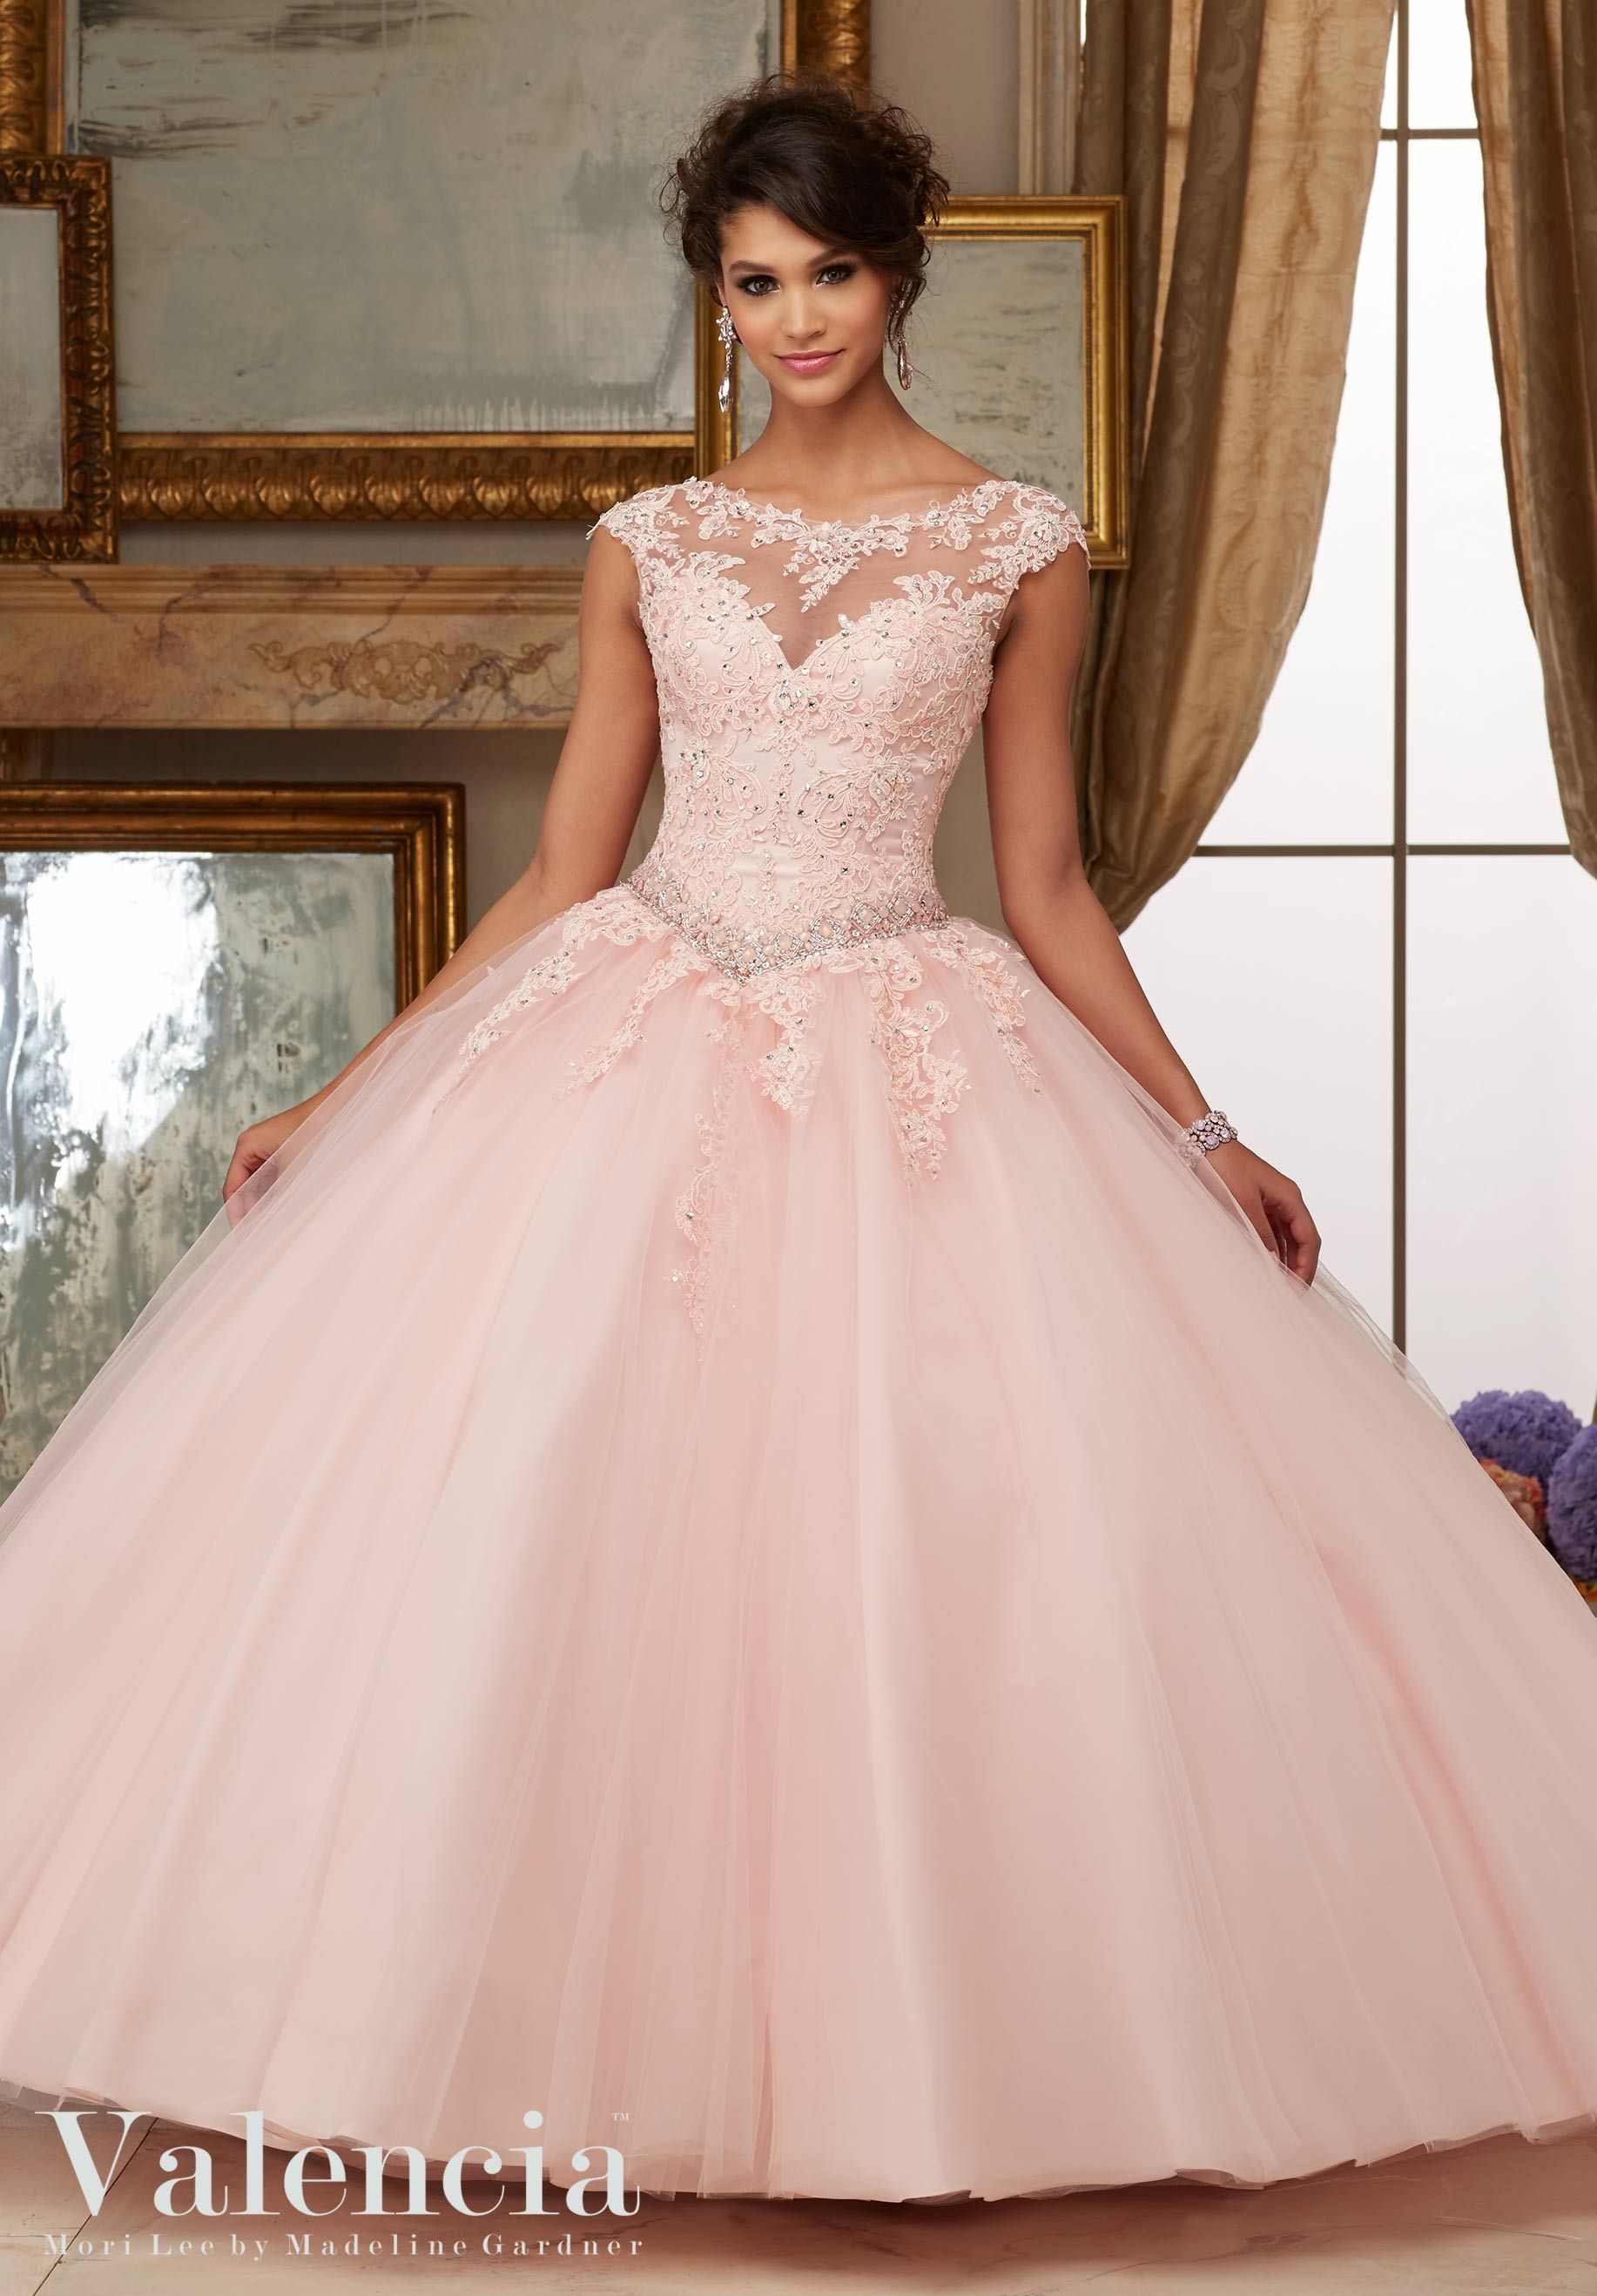 2019 year style- Pink light quinceanera dresses tumblr